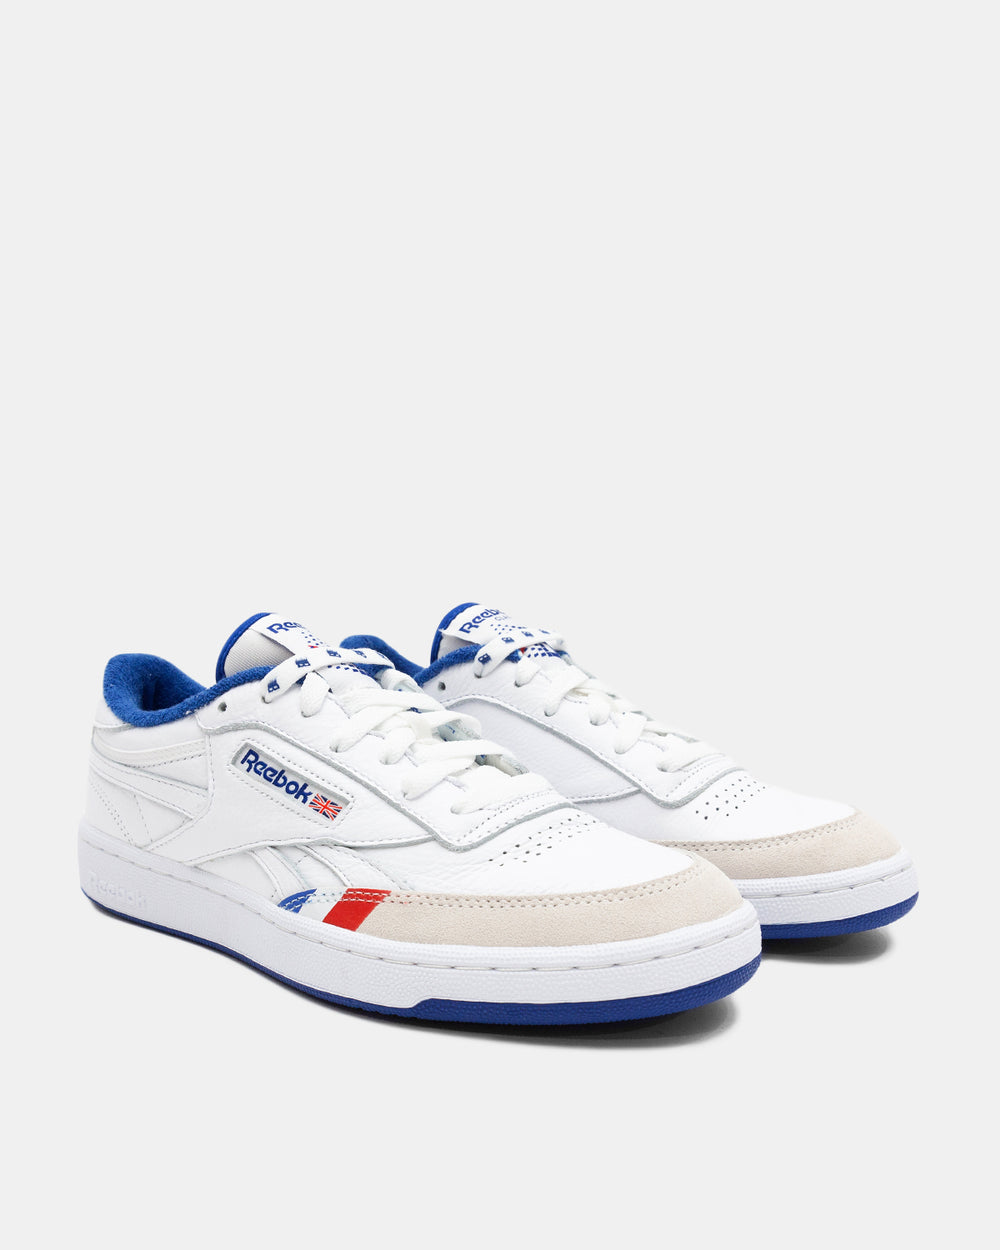 Reebok - Reebok x Bronze 56K Club C Revenge (White | True Grey | Cobalt)